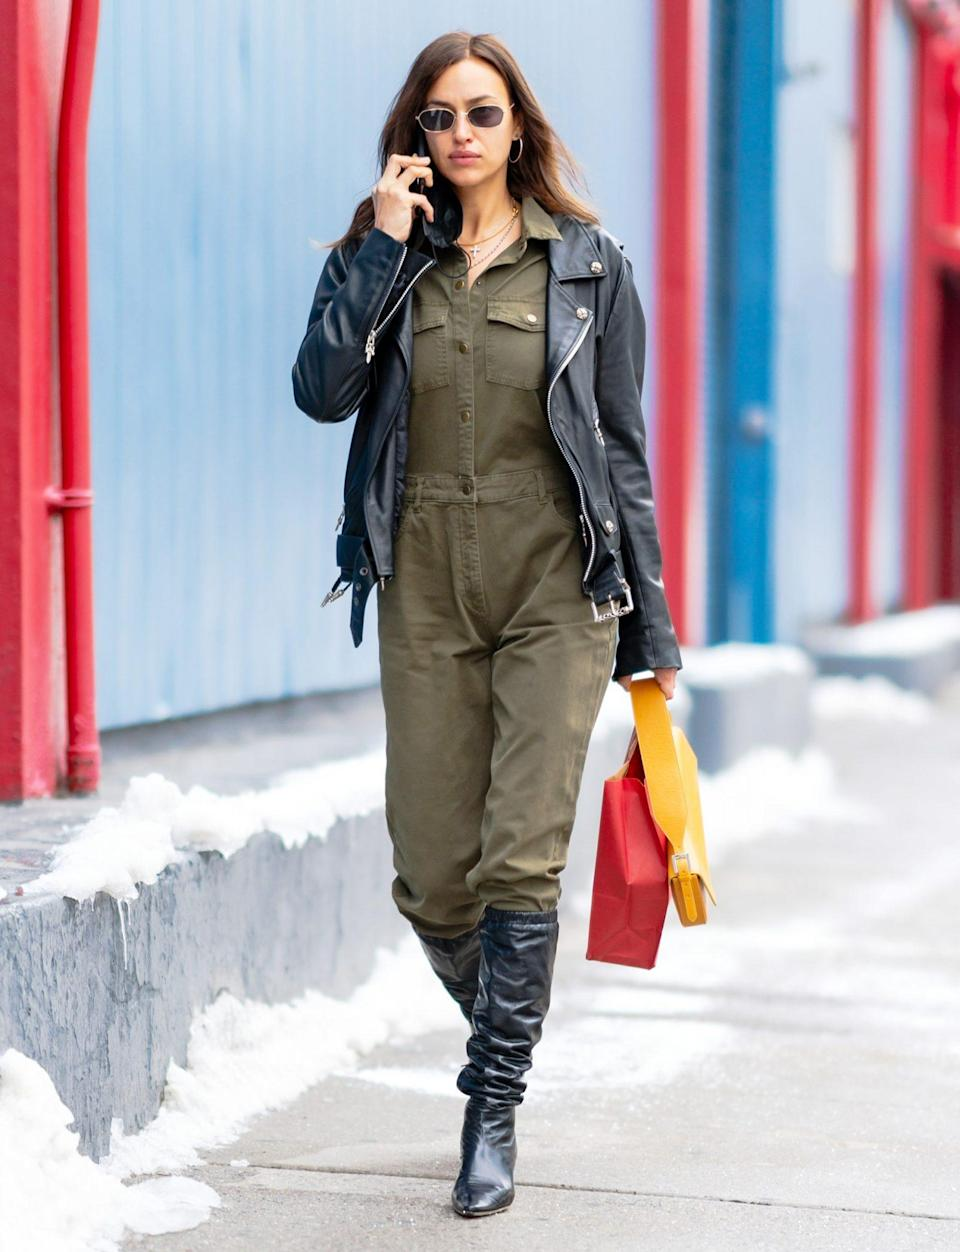 <p>Irina Shayk shows off her street style in an olive green jumpsuit on Sunday in N.Y.C. </p>